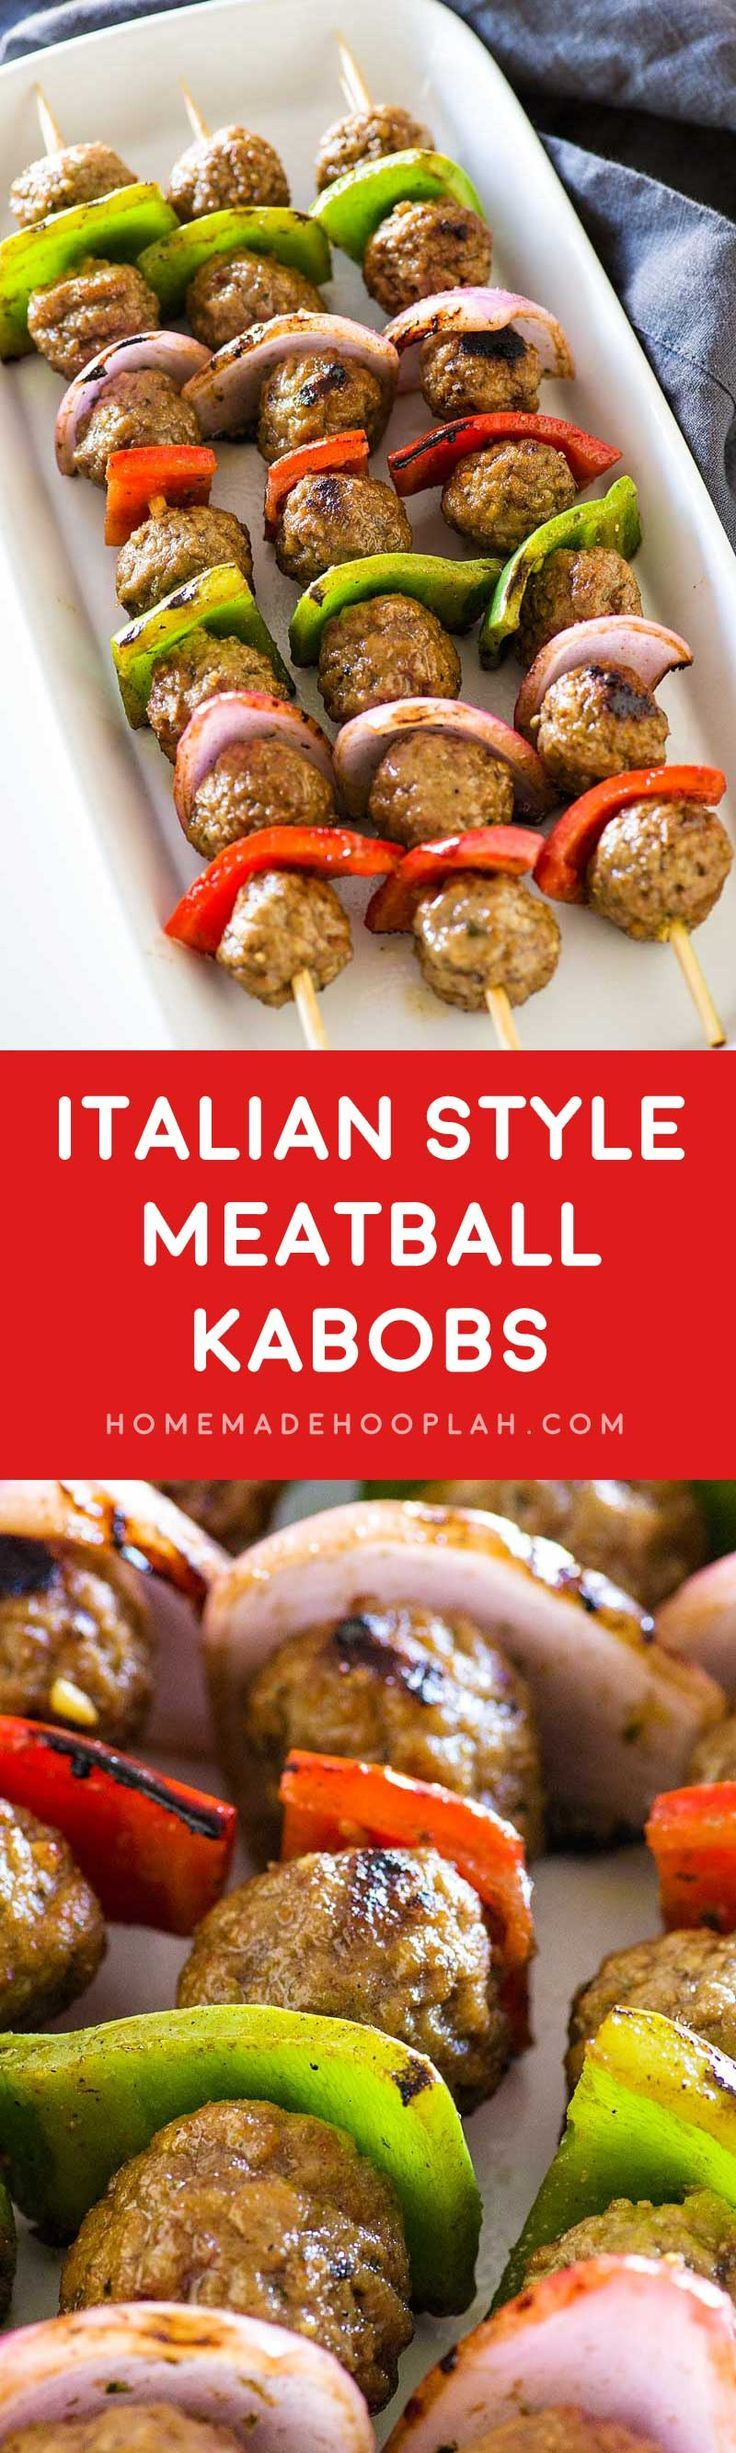 Italian Style Meatball Kabobs! Savory meatballs and classic kabob veggies marinated in an Italian style sauce. These meatball kabobs have twice the flavor for half the effort! nom